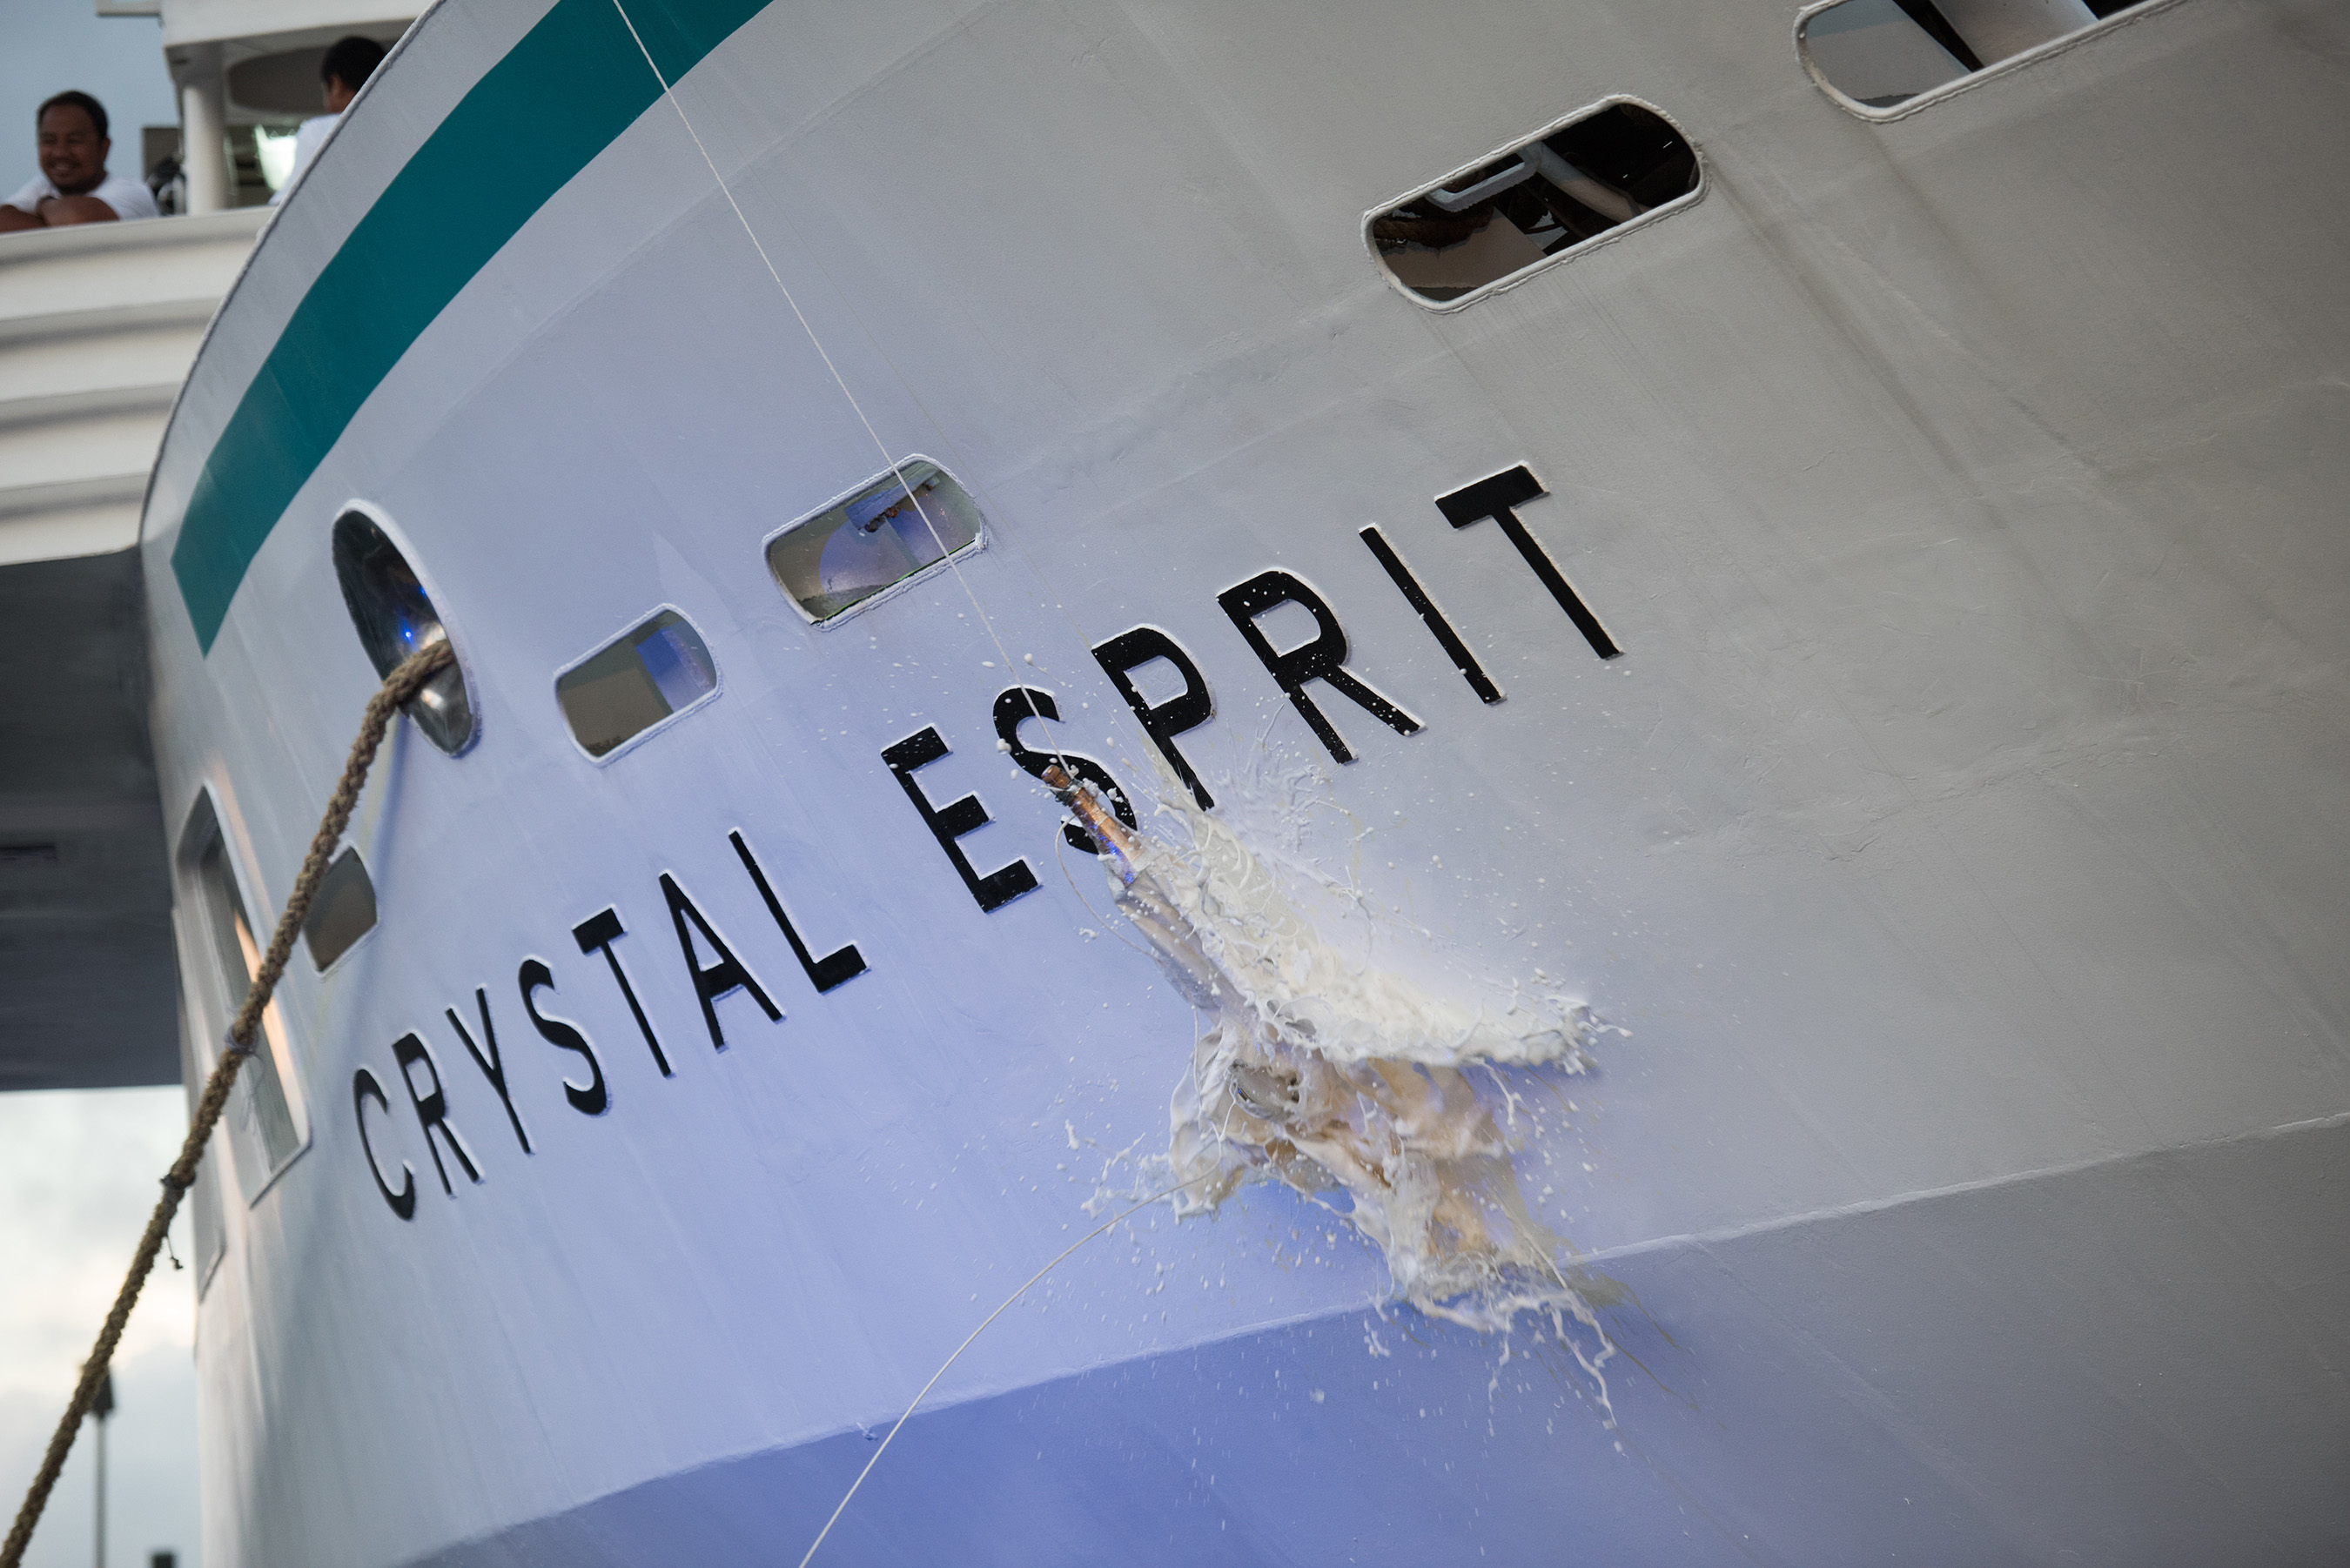 On December 20, 2015 Crystal Esprit was christened in an elegant ceremony at Eden Island Marina in Mahe, Victoria, Seychelles.